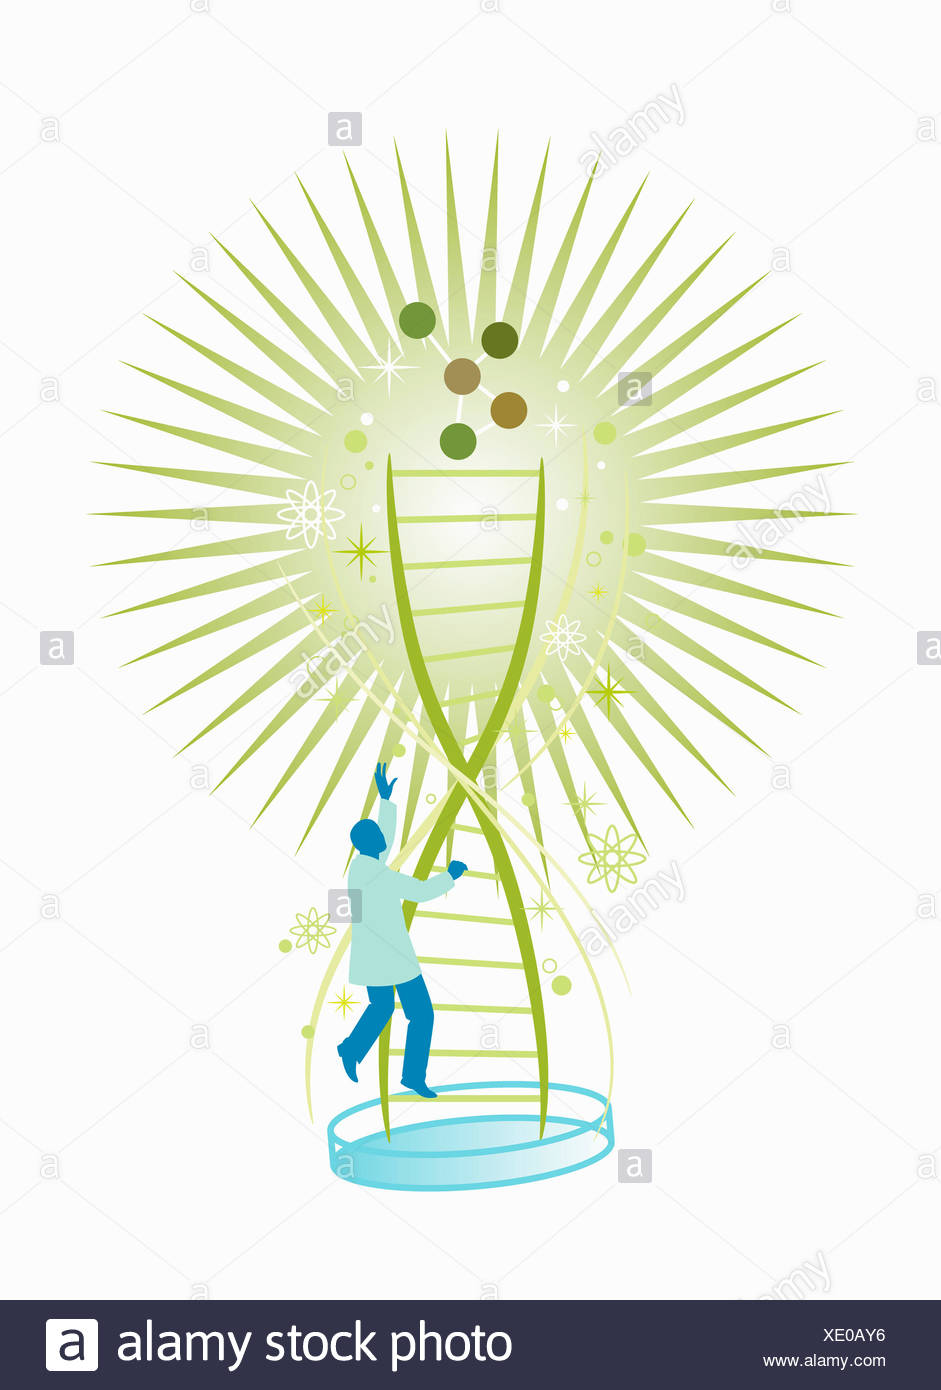 Scientist climbing double helix - Stock Image